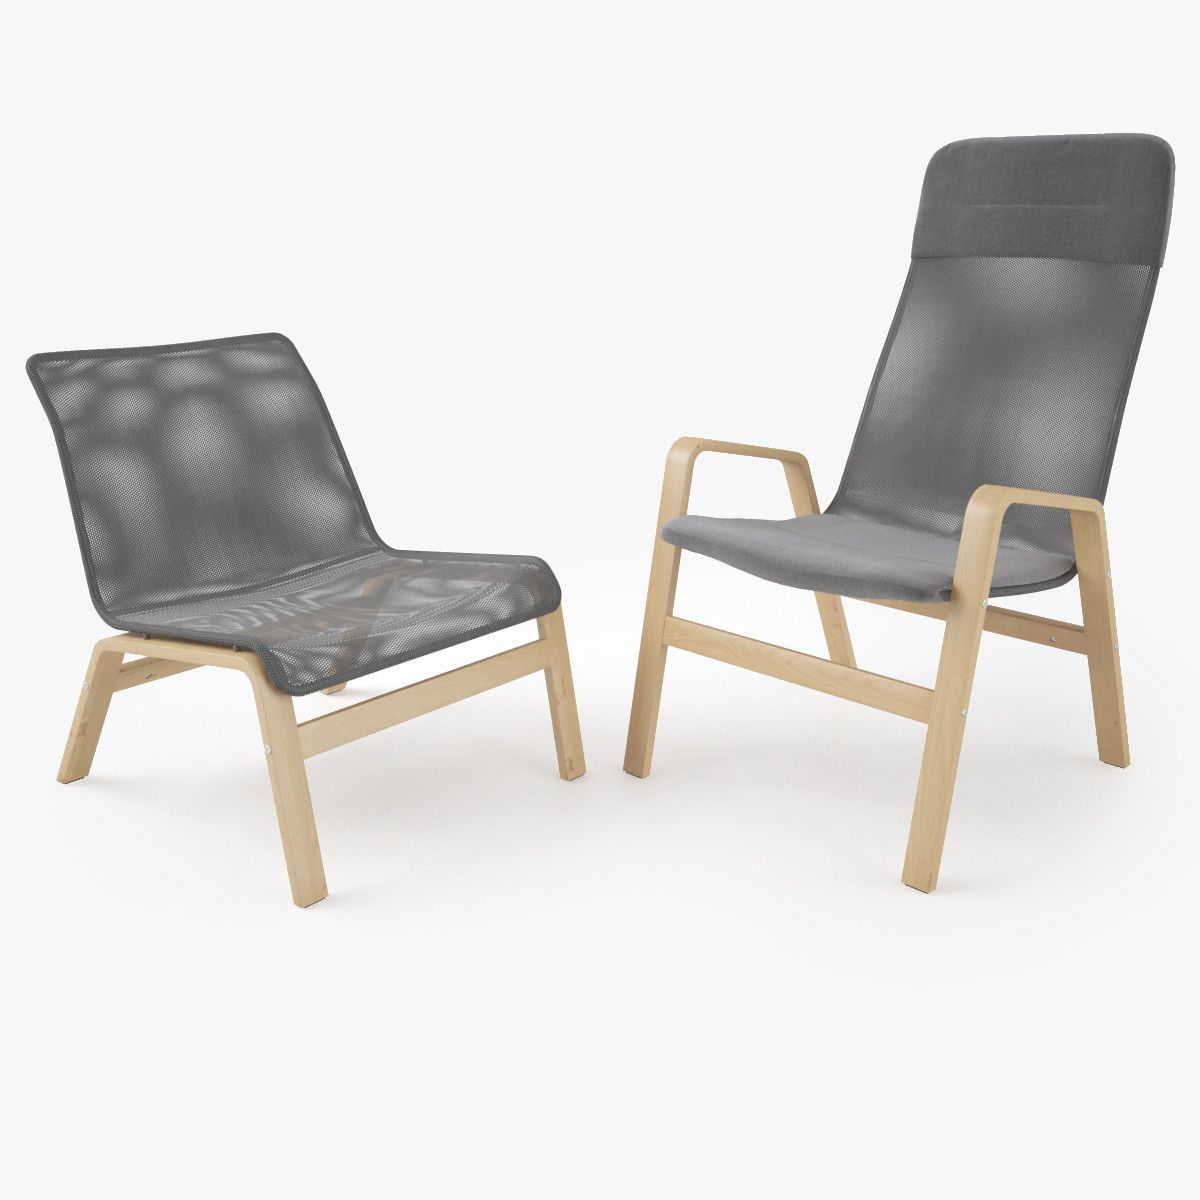 3d ikea nolbyn nolmyra armchair model home armchair for Ikea visualisation 3d